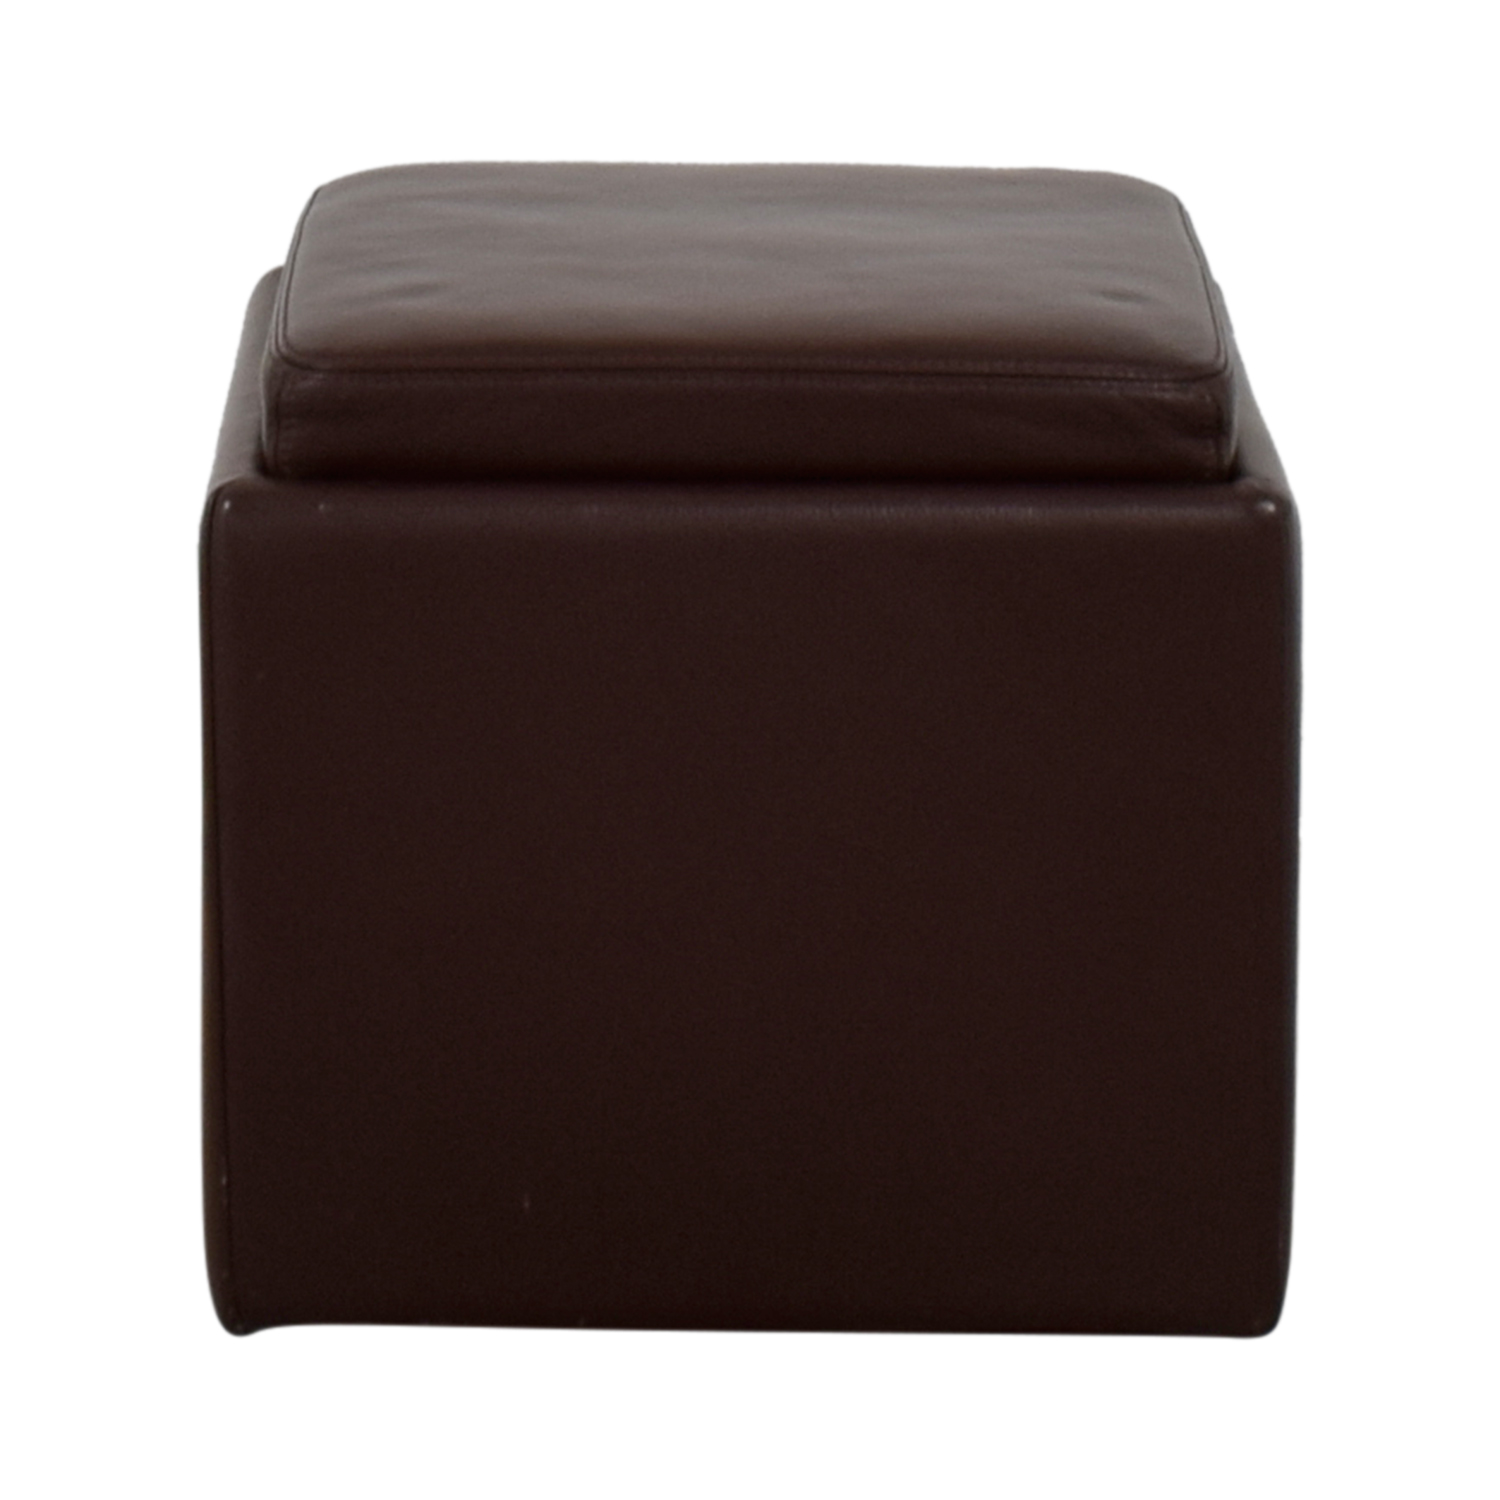 buy Room & Board Brown Leather Ottoman Room & Board Ottomans